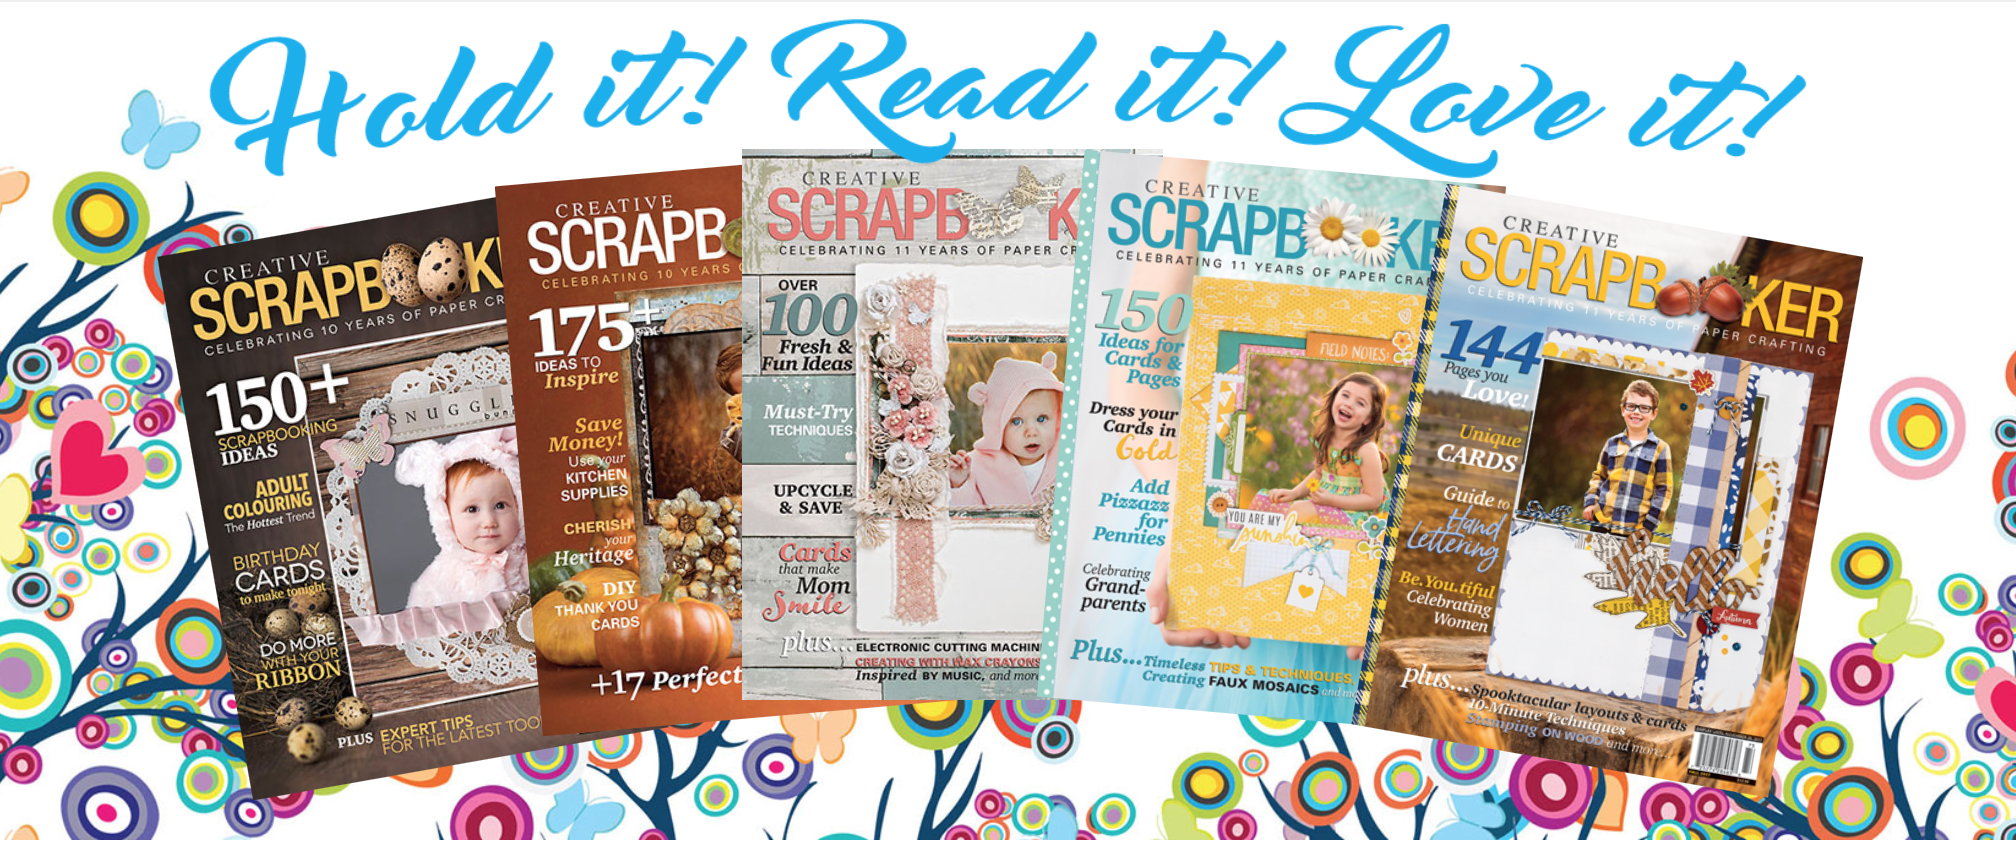 Creative Scrapbooker Magazine subscription / Quarterly paper publication / HOLD it, LOVE it, READ it